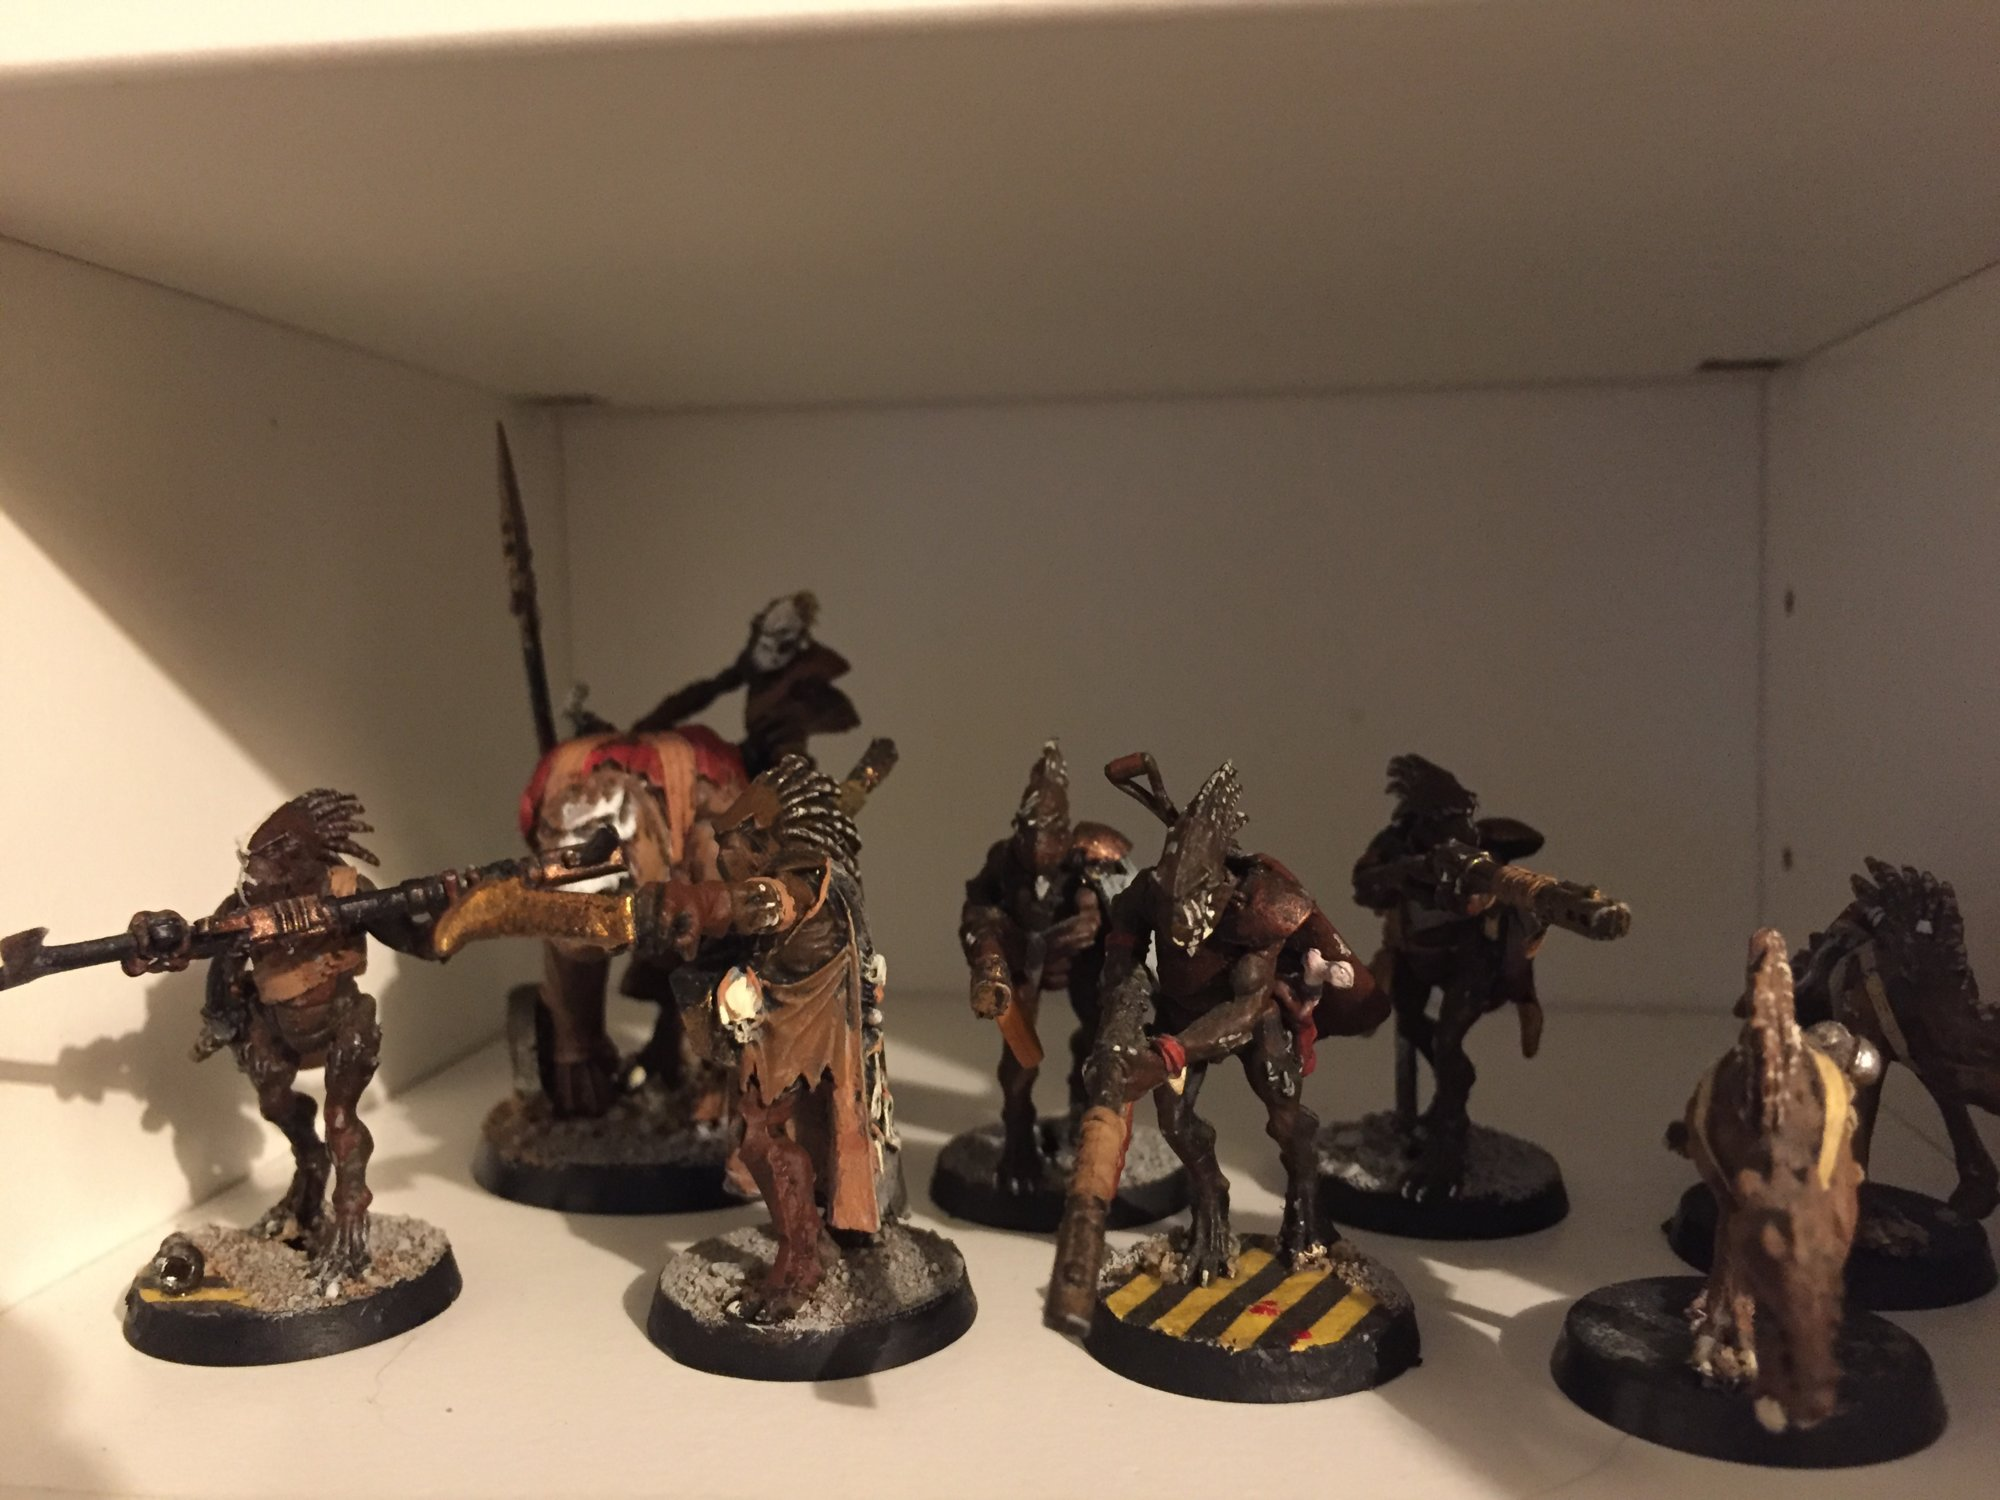 Kroot SW:A team